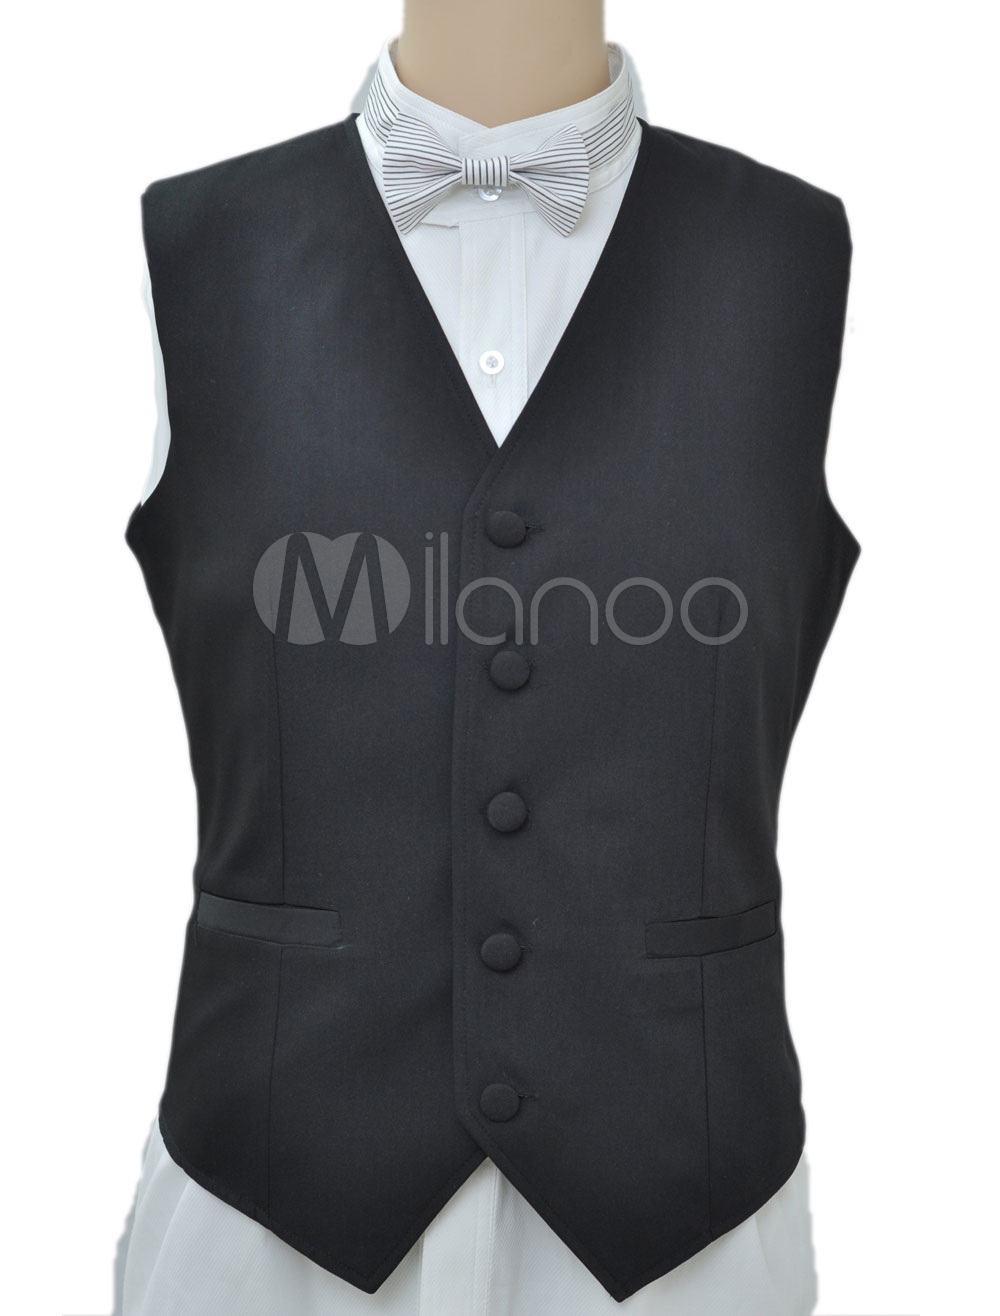 Buy Steampunk Vintage Costume Black Waistcoat Men's Back Strap Retro Suit Vest Halloween for $57.99 in Milanoo store